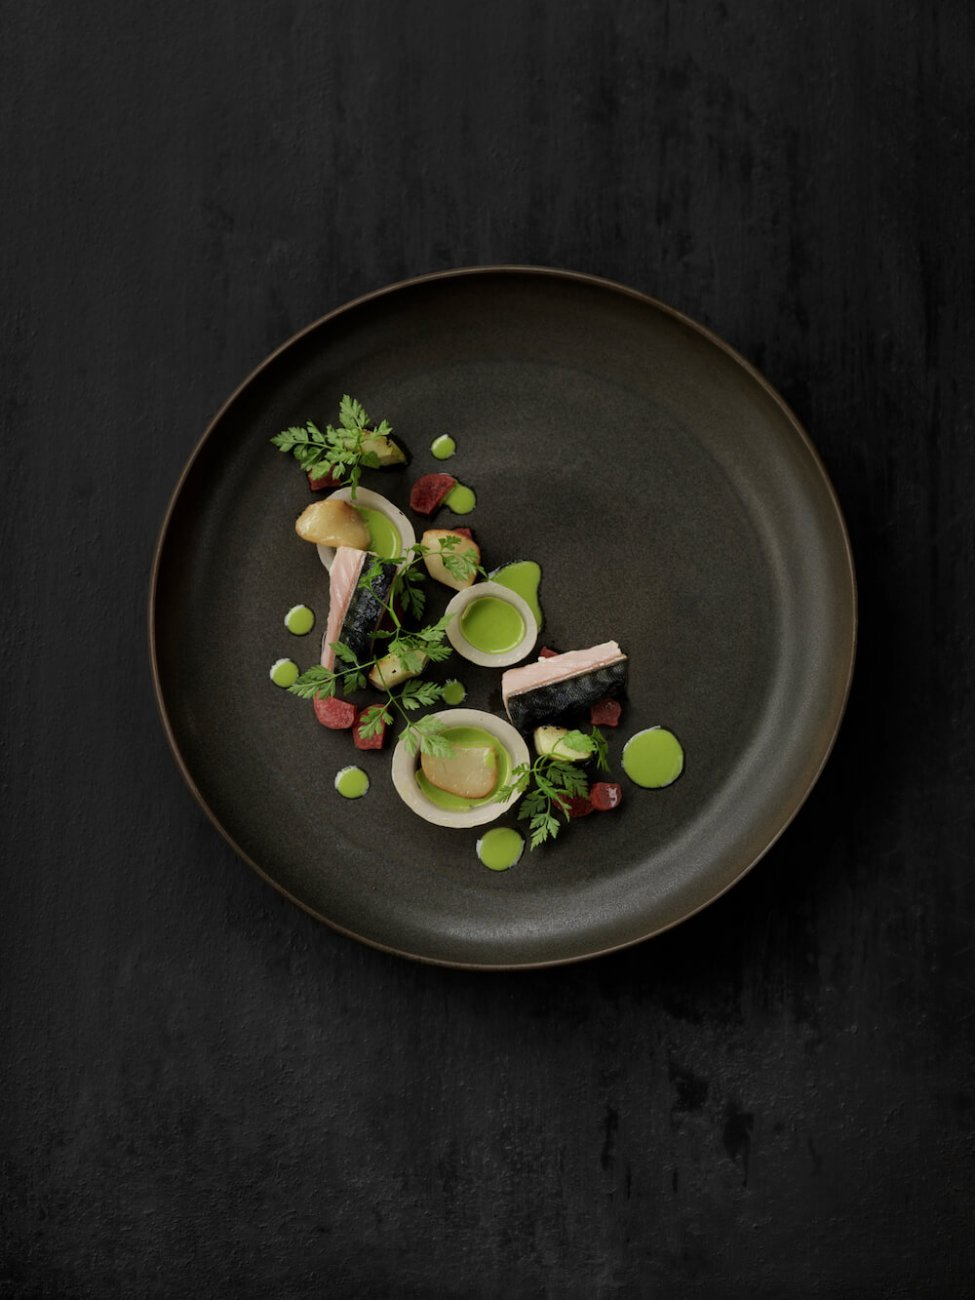 MACKEREL, PICKLED SKILLEBY RHUBARB & ONIONS, GRILLED CUCUMBER, SMOKED BEEF MARROW AND PINE JUICE